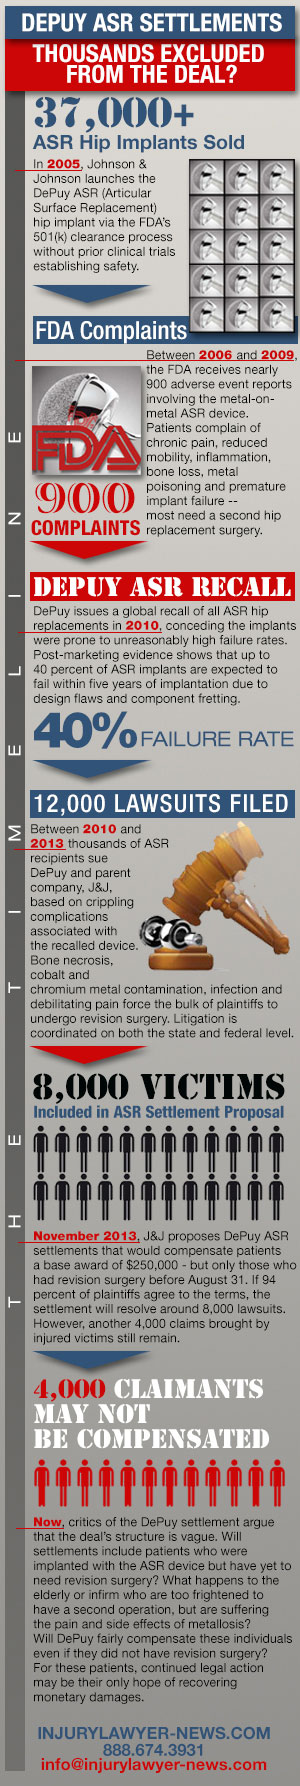 depuy infographic, depuy hip lawsuit infographic, depuy hip settlements